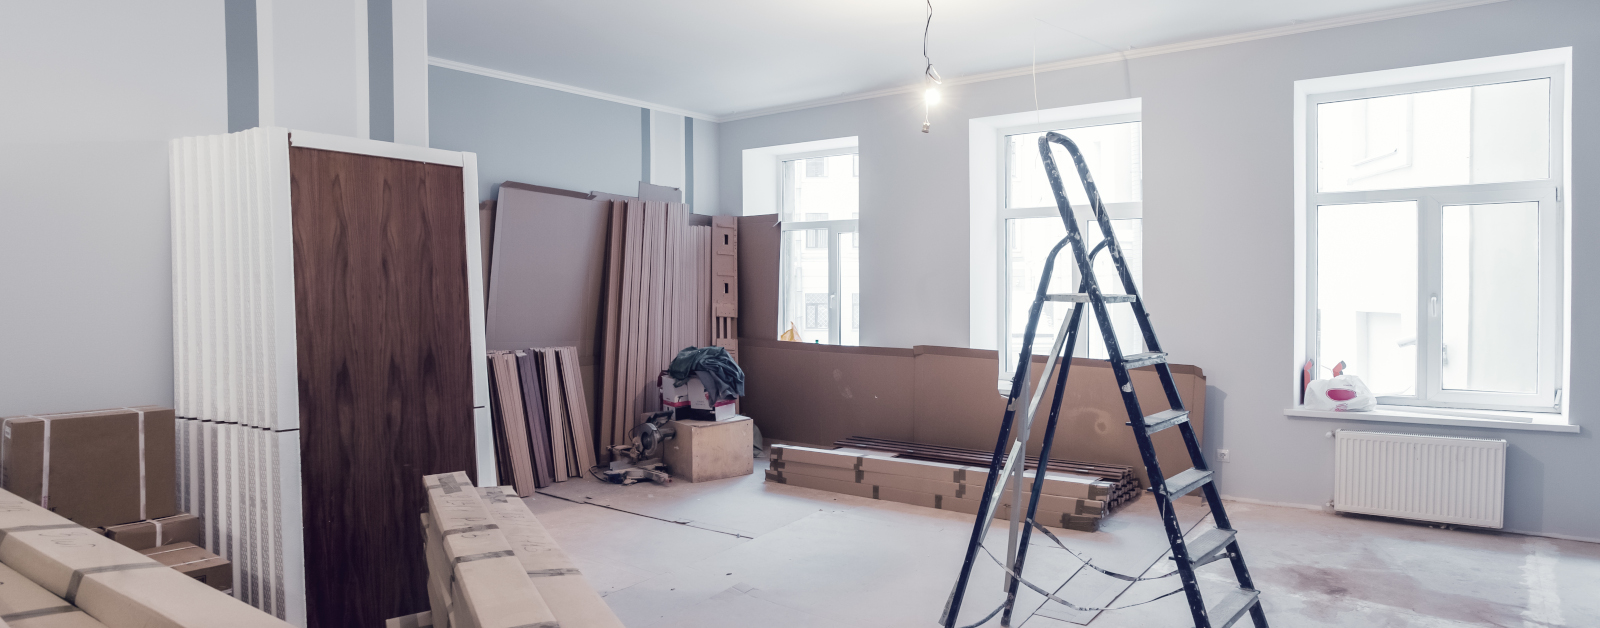 How To Insure Your Home Renovations